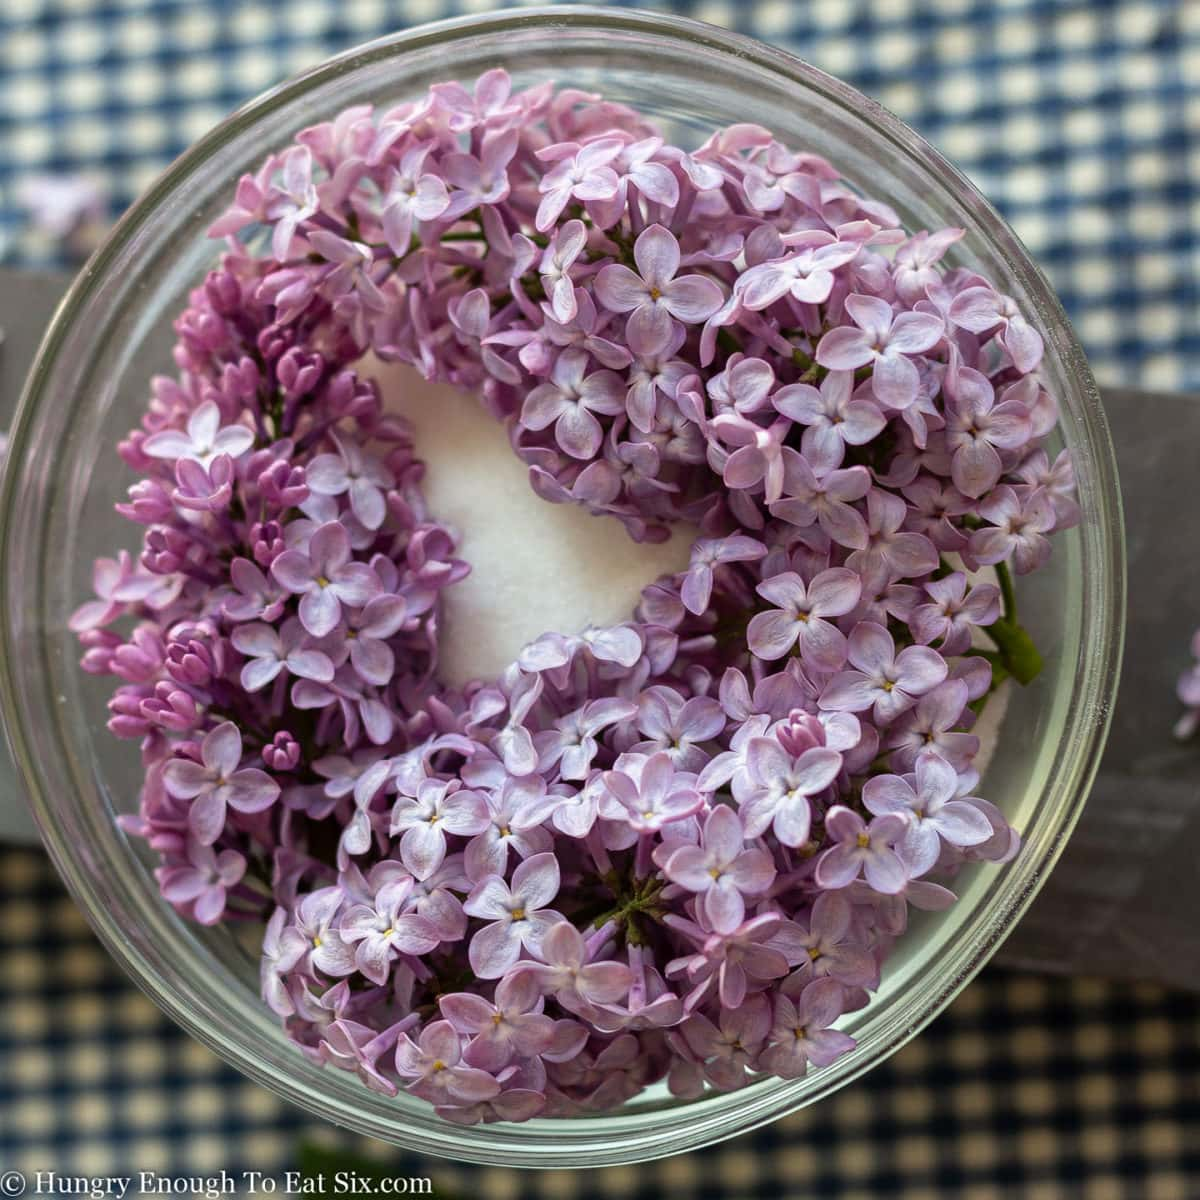 Sprigs of purple lilac laying over white sugar in a bowl.